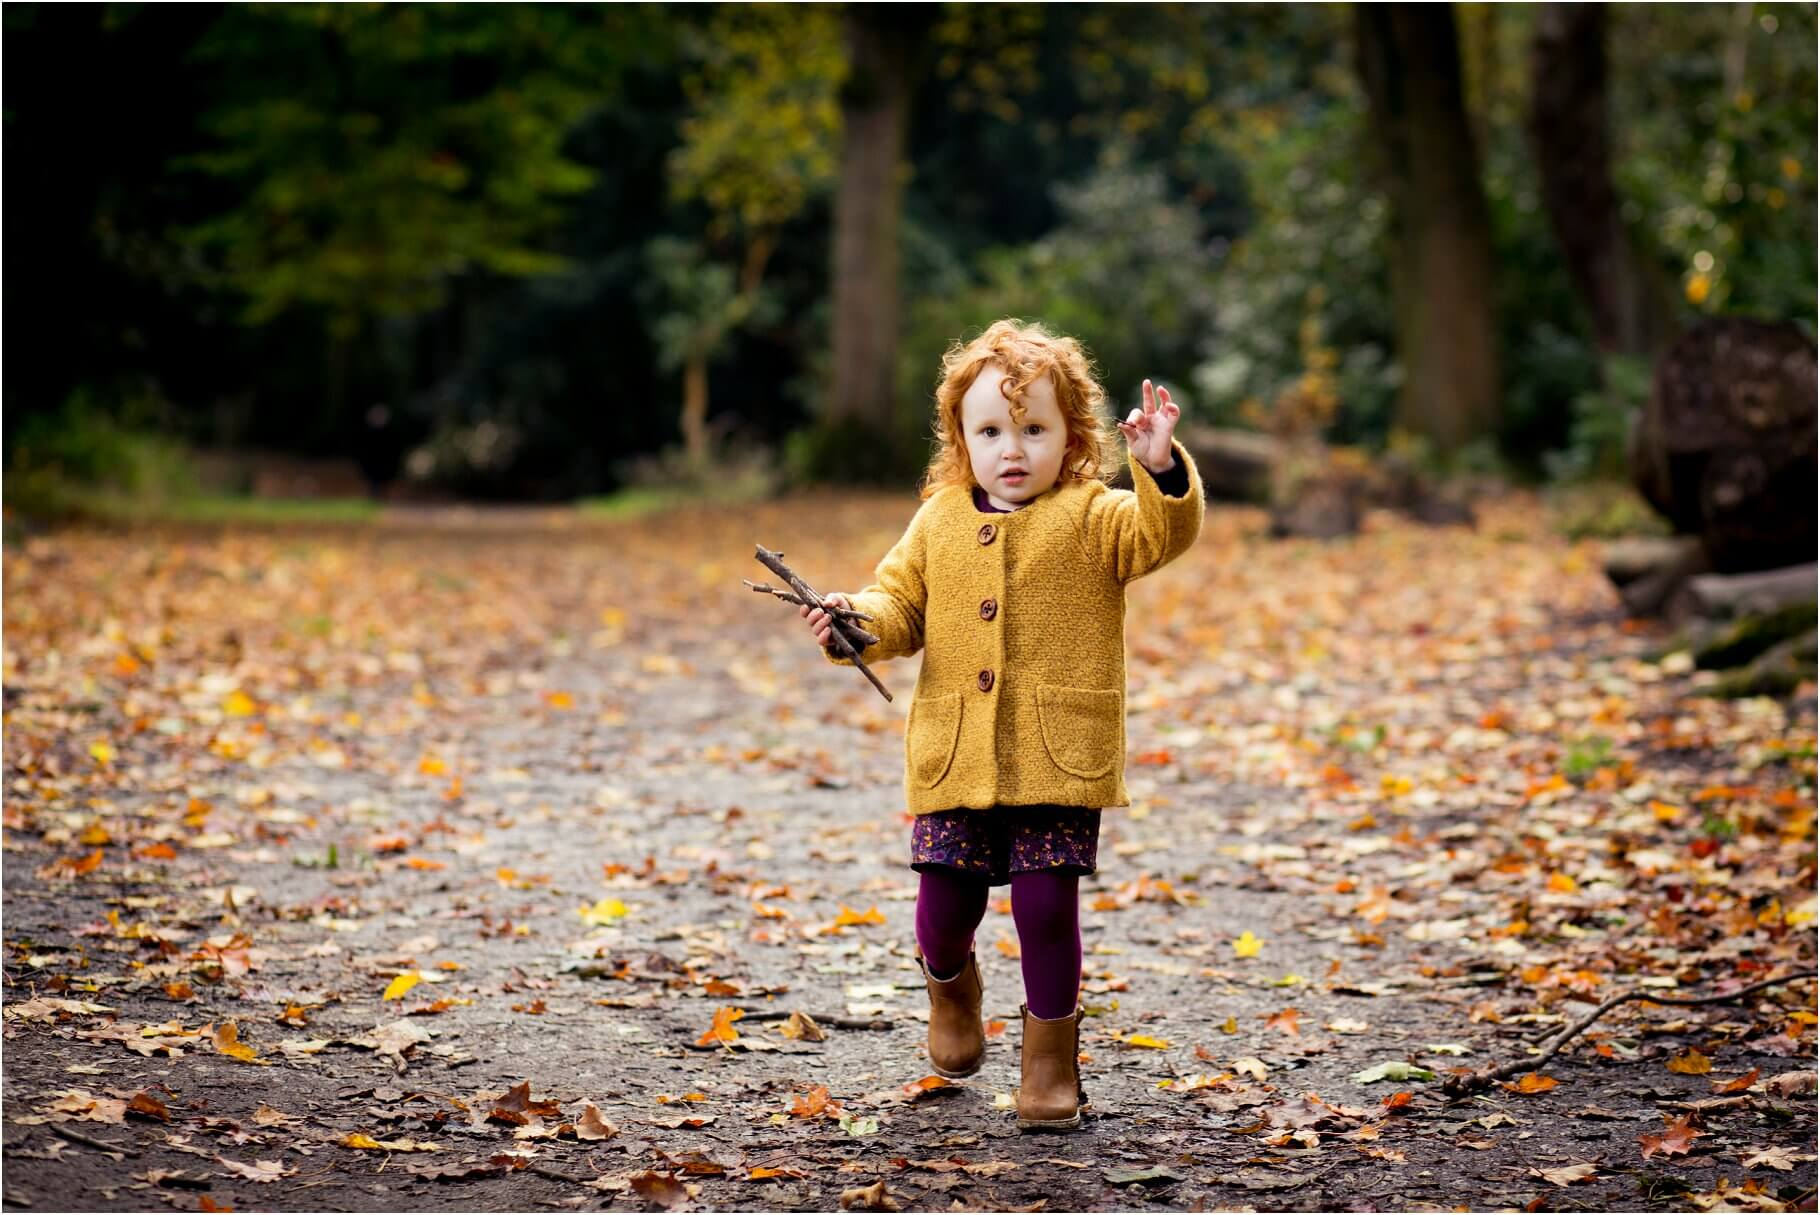 Autumn Photoshoot Towneley Park